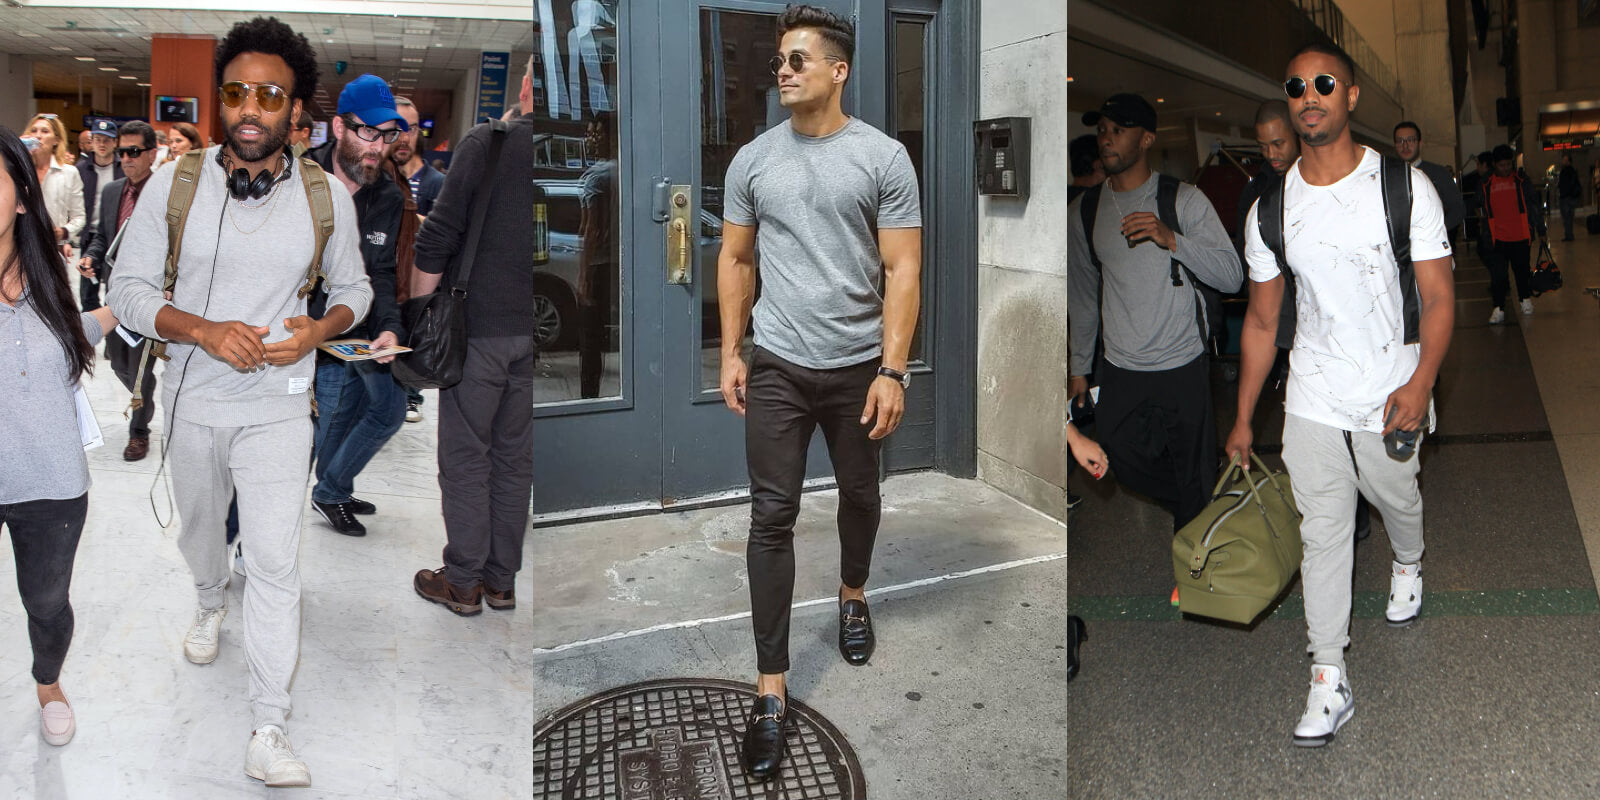 Airport Outfits Athleisure Inspiration